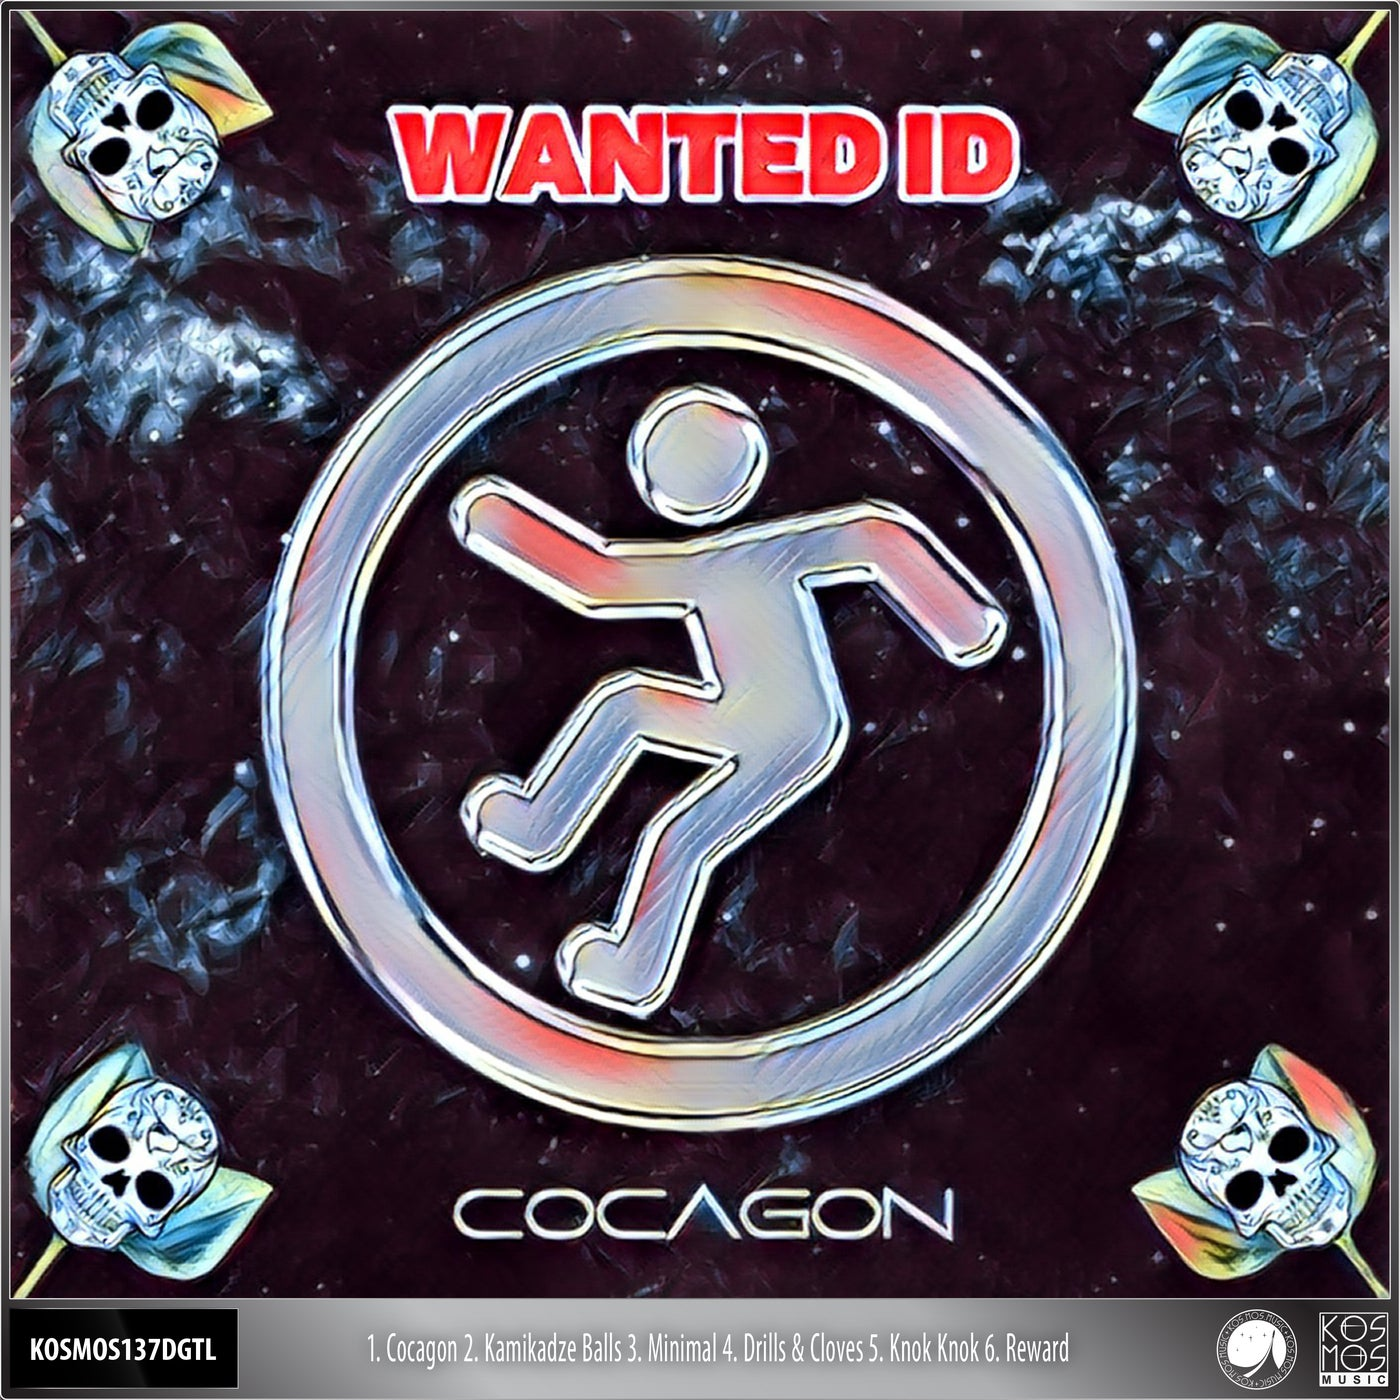 Wanted ID - Cocagon (2021)